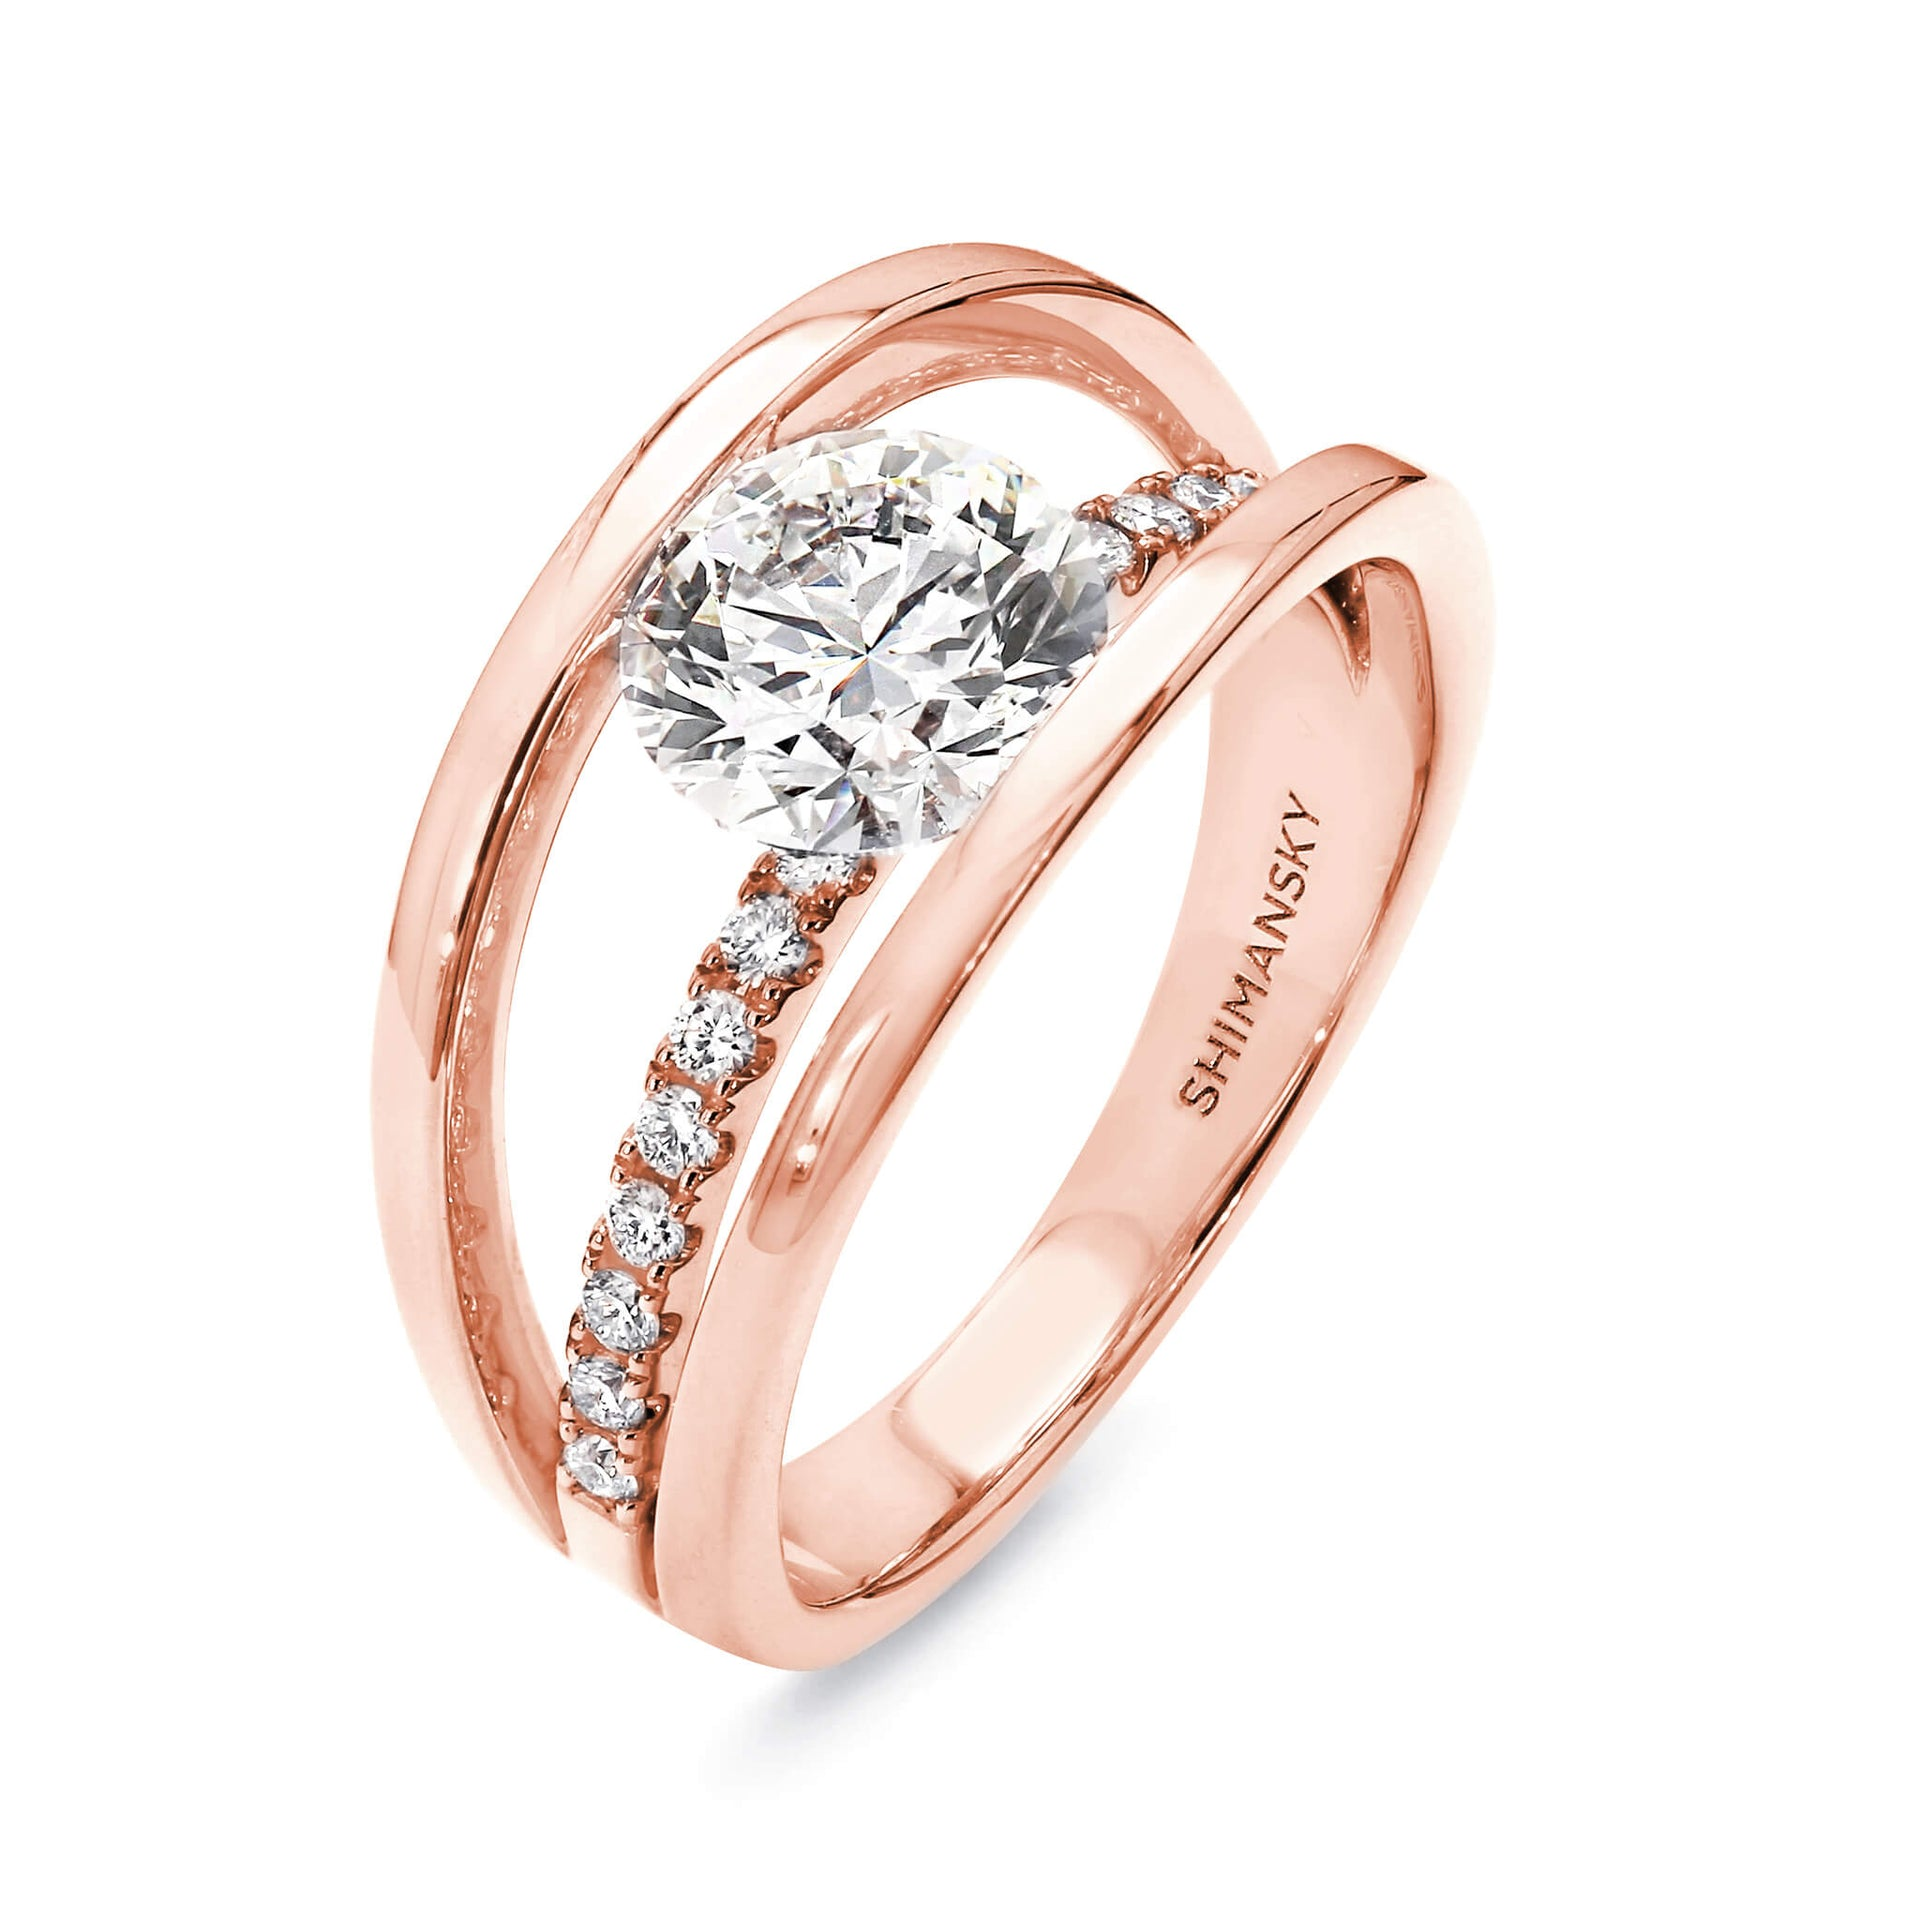 1.77 Carat Evolym Micro Set Diamond Engagement Ring in 18K Rose Gold 3D View